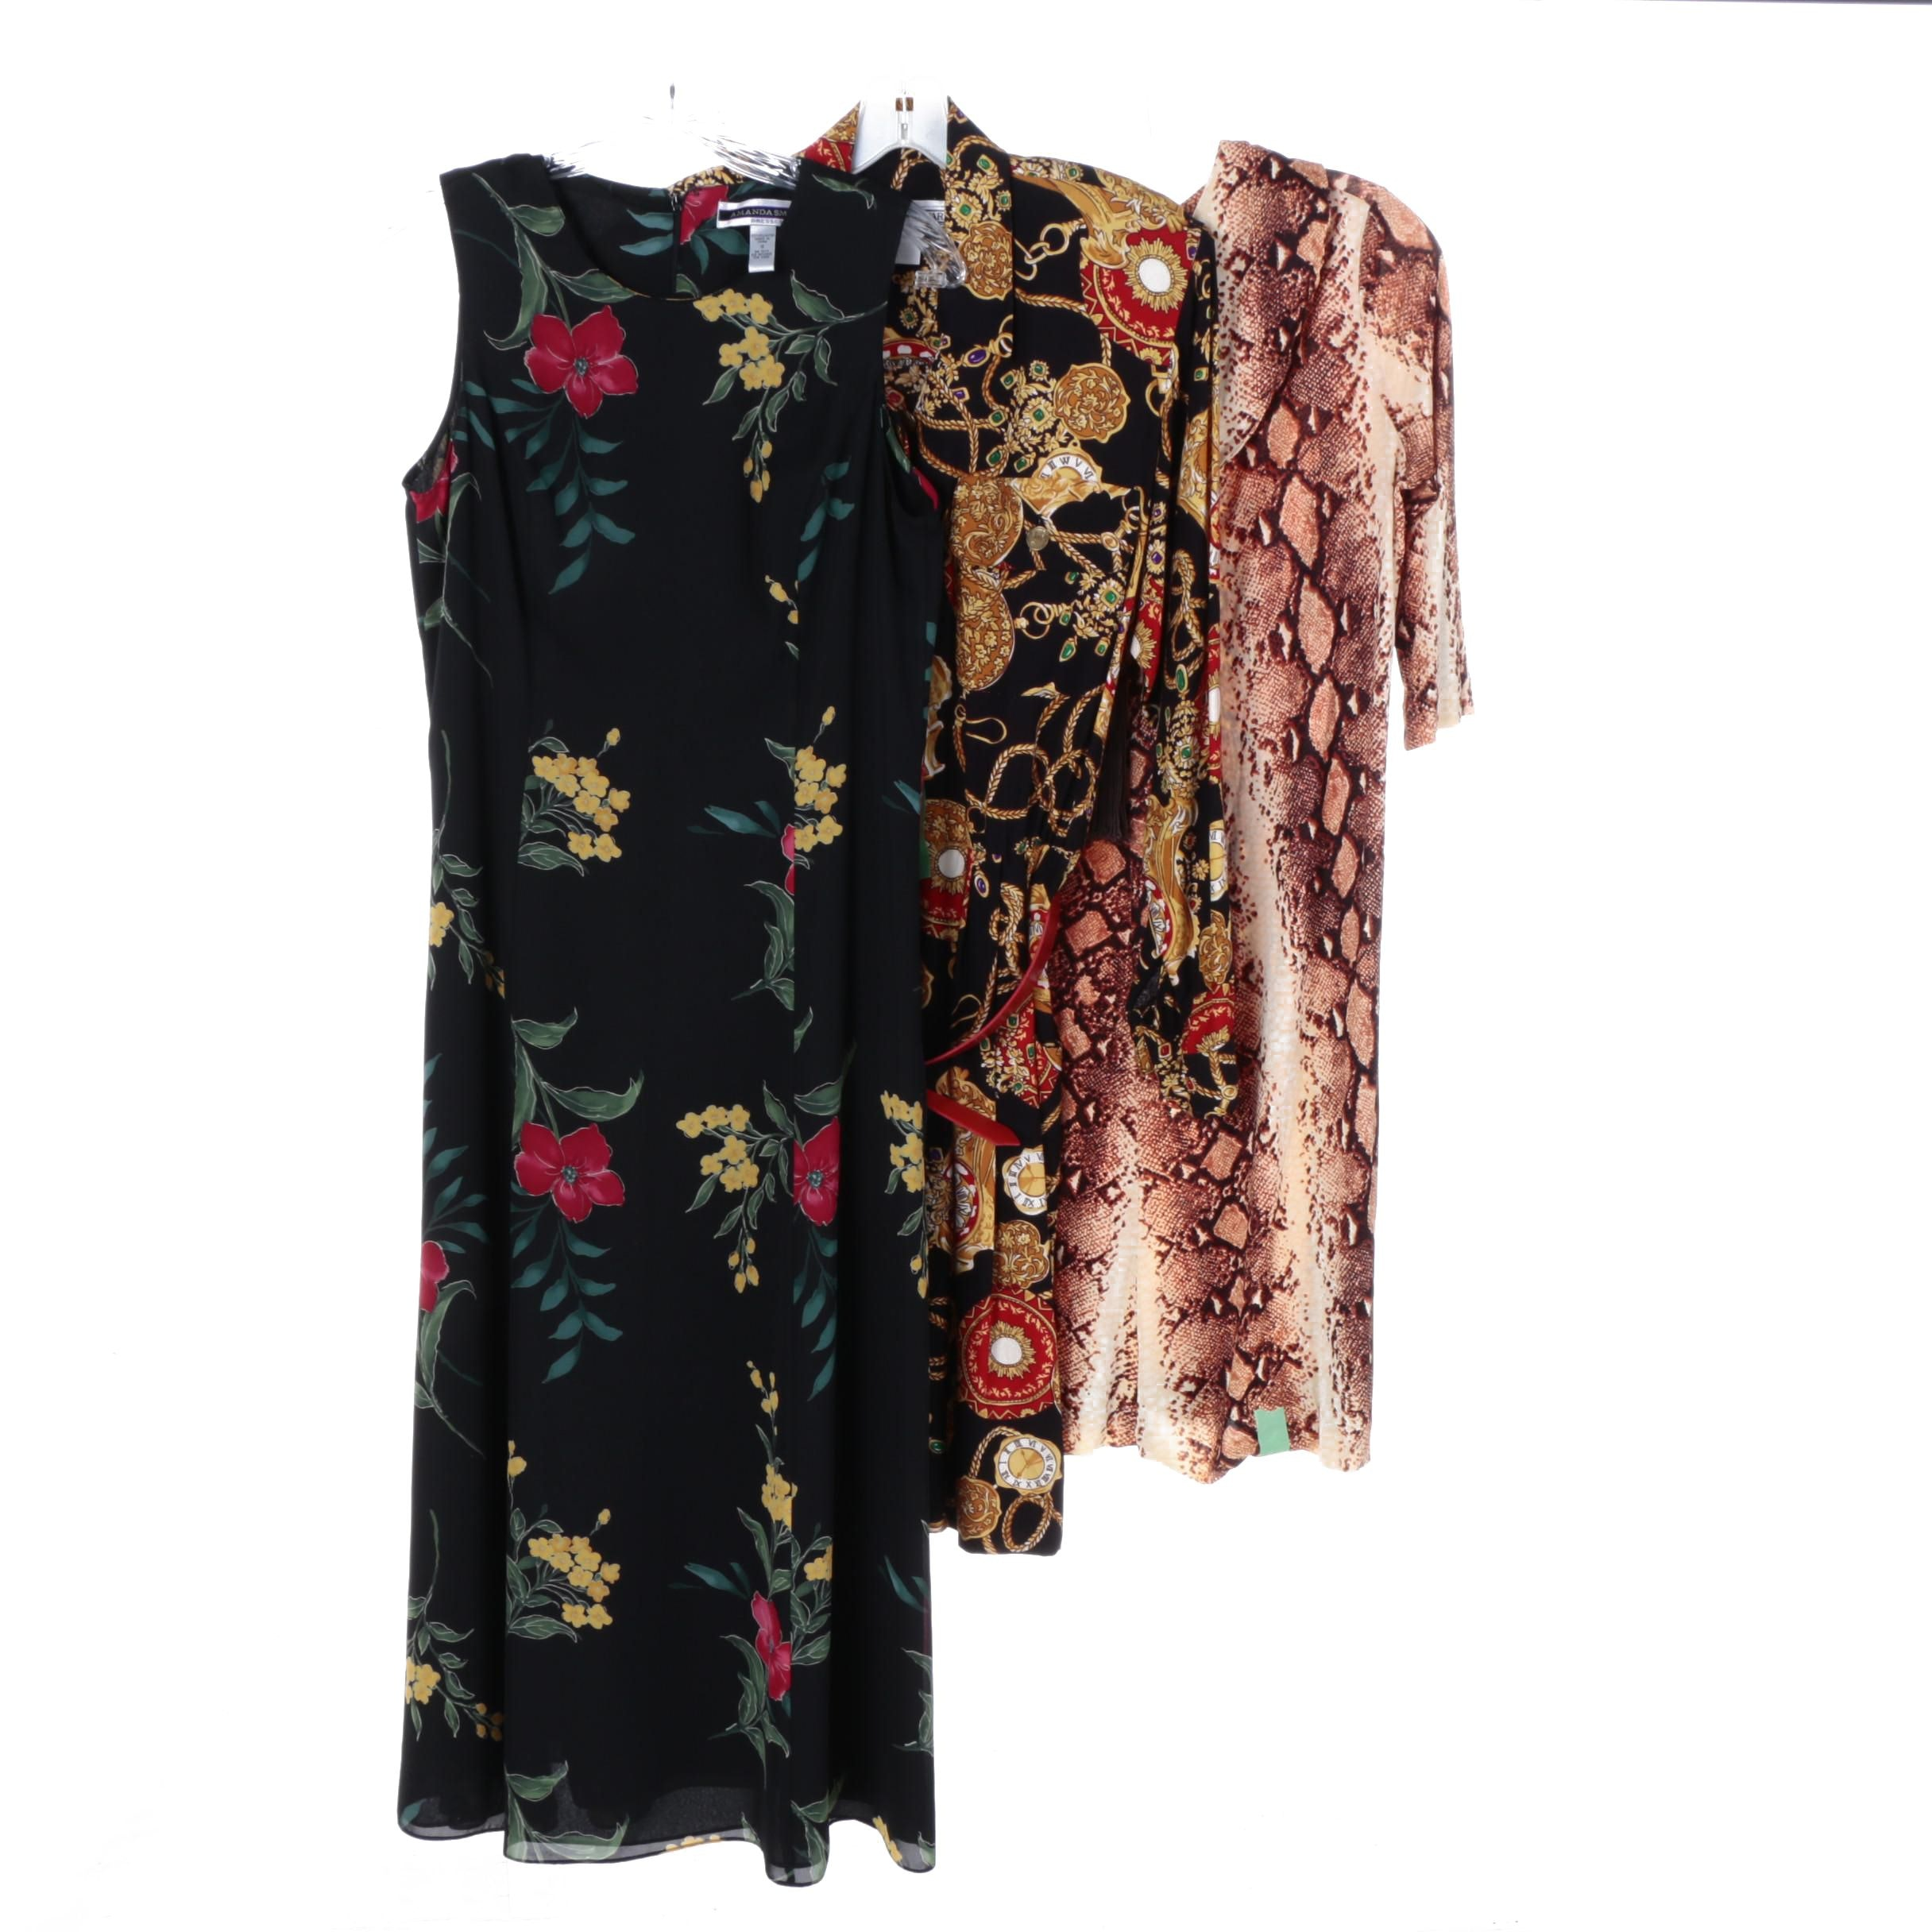 Woman's Patterned Dresses, Including Jessica Howard